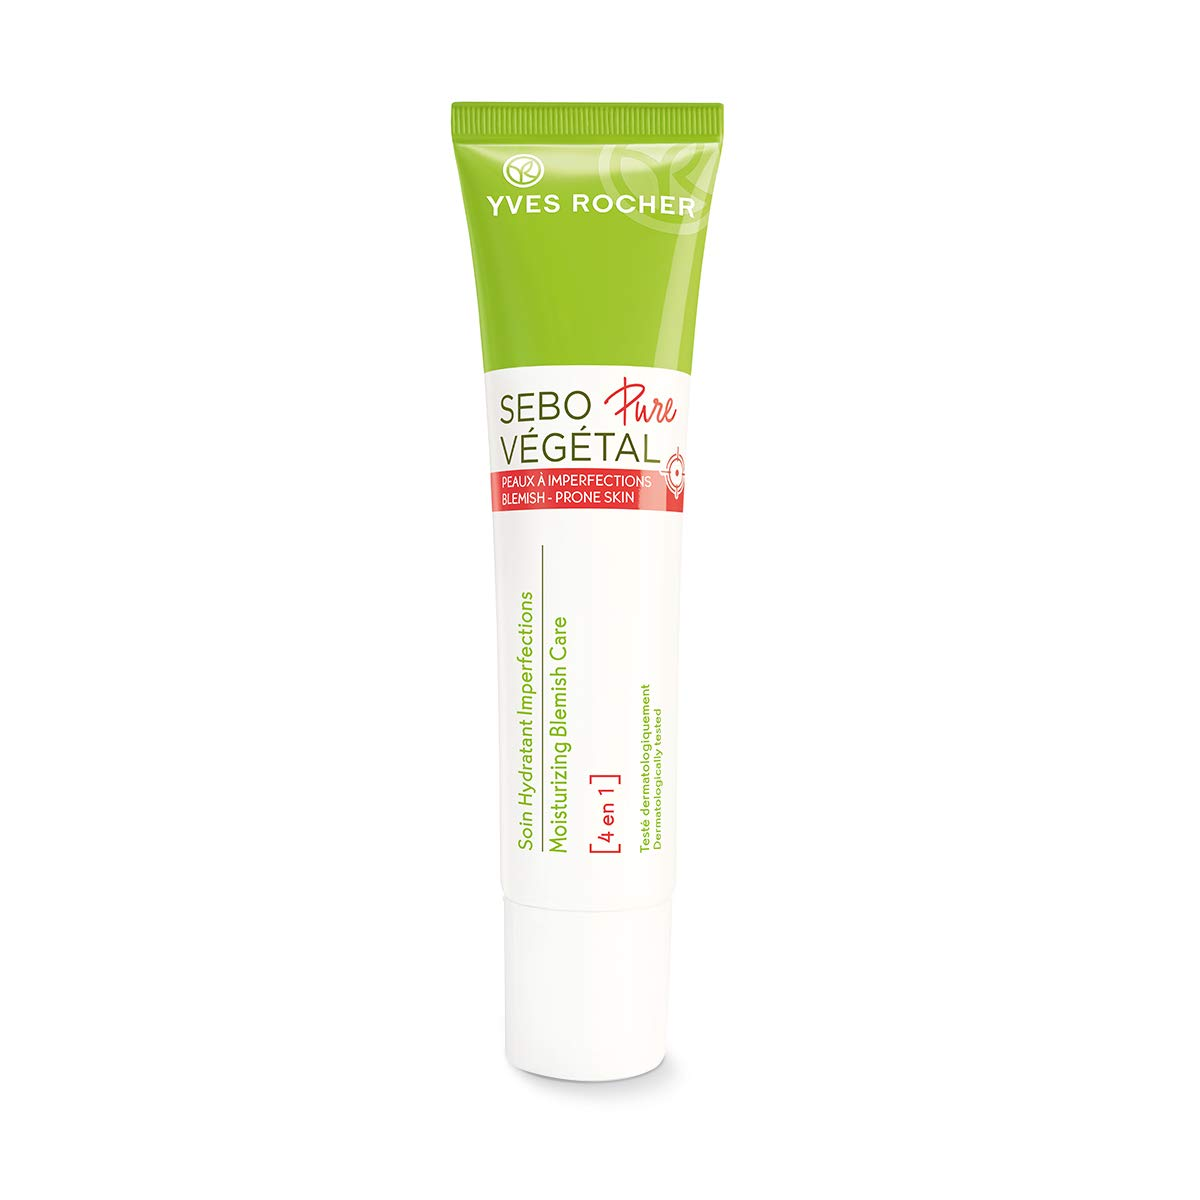 Yves Rocher Sebo Pure Végétal Face Moisturizing Blemish Care 4 in 1 with Salicylic Acid, for Acne-prone Skin 40 ml tube